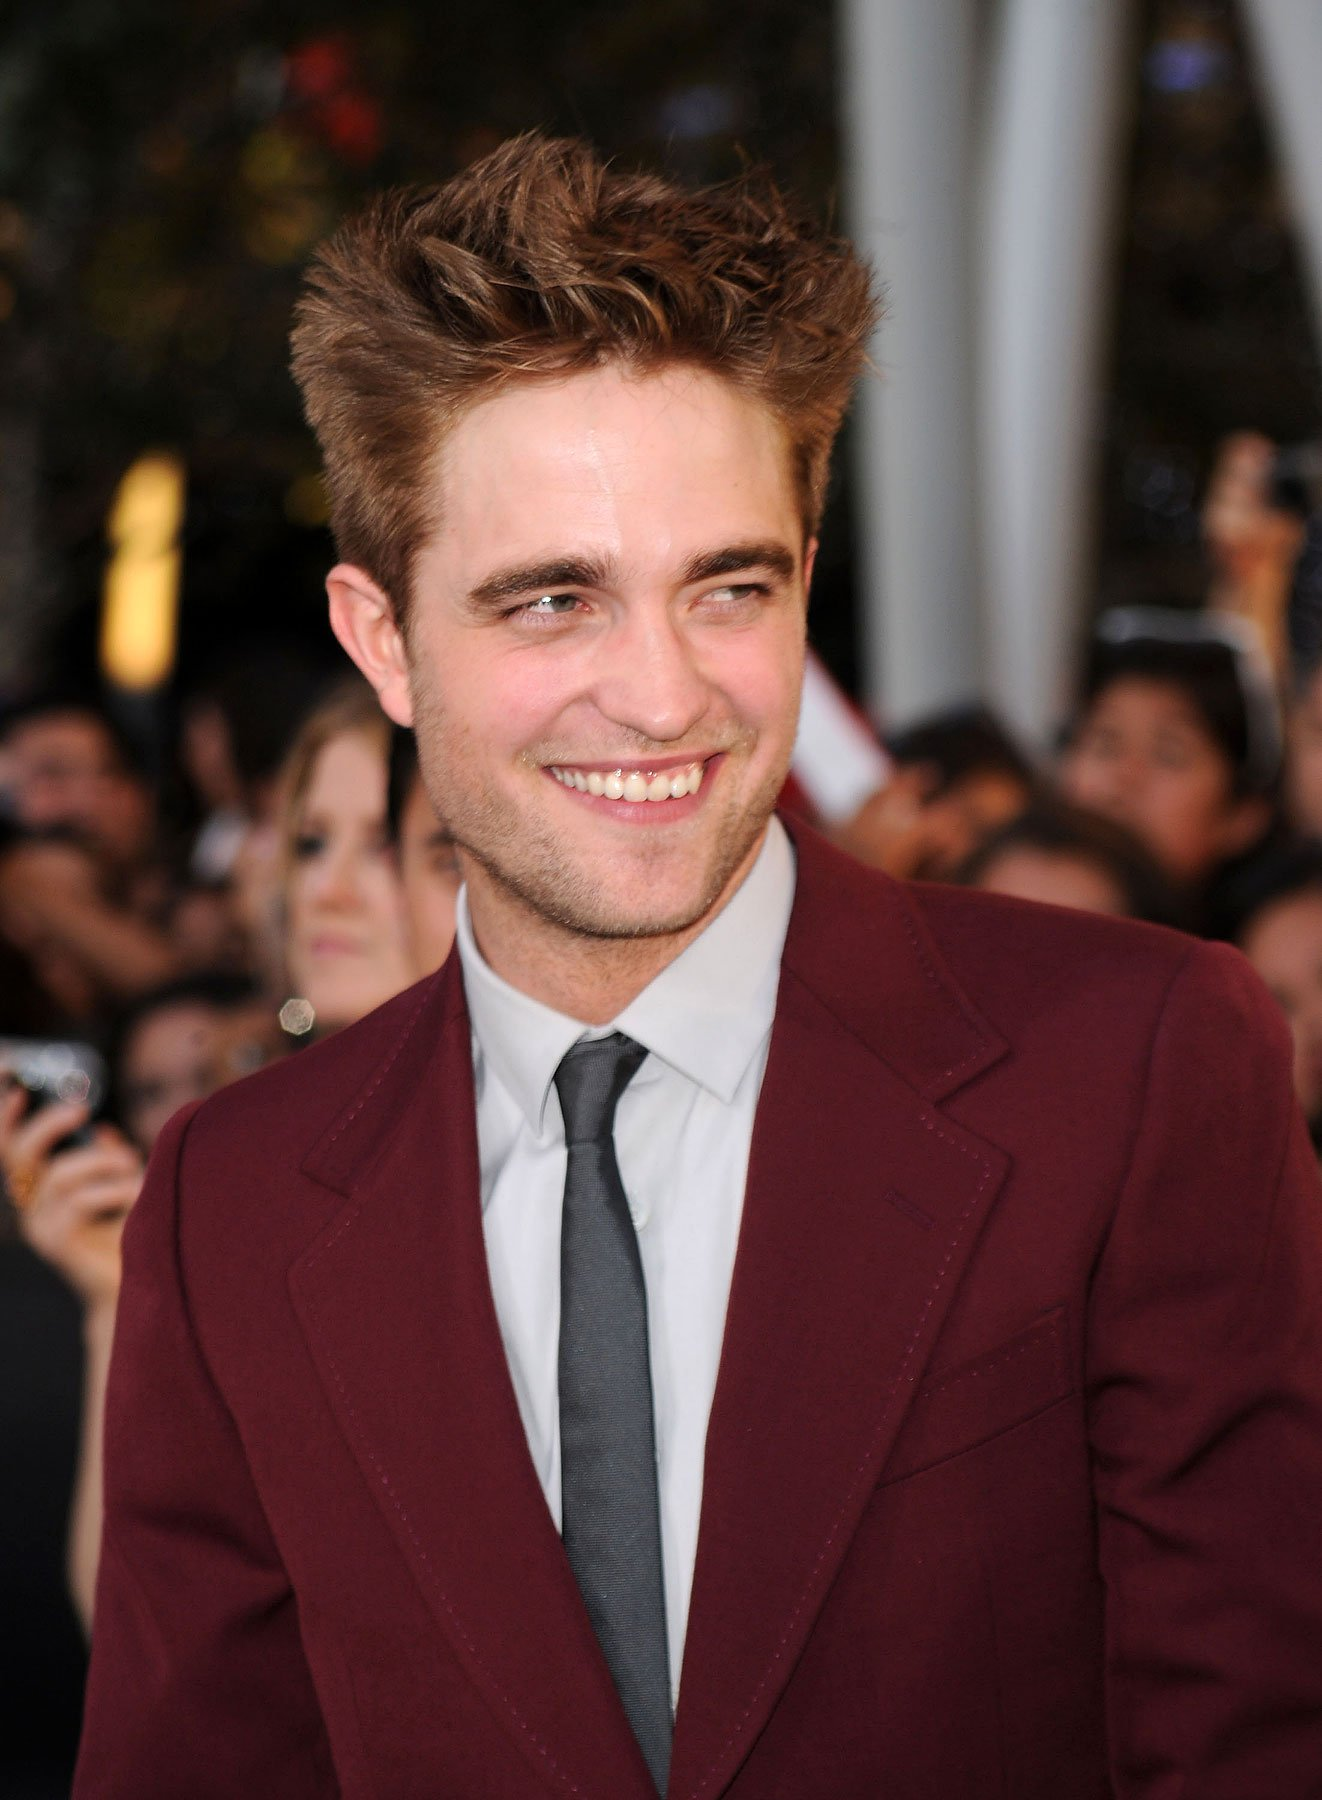 Robert Pattinson Tops Glamour 50 Sexiest Men Poll (PHOTOS)